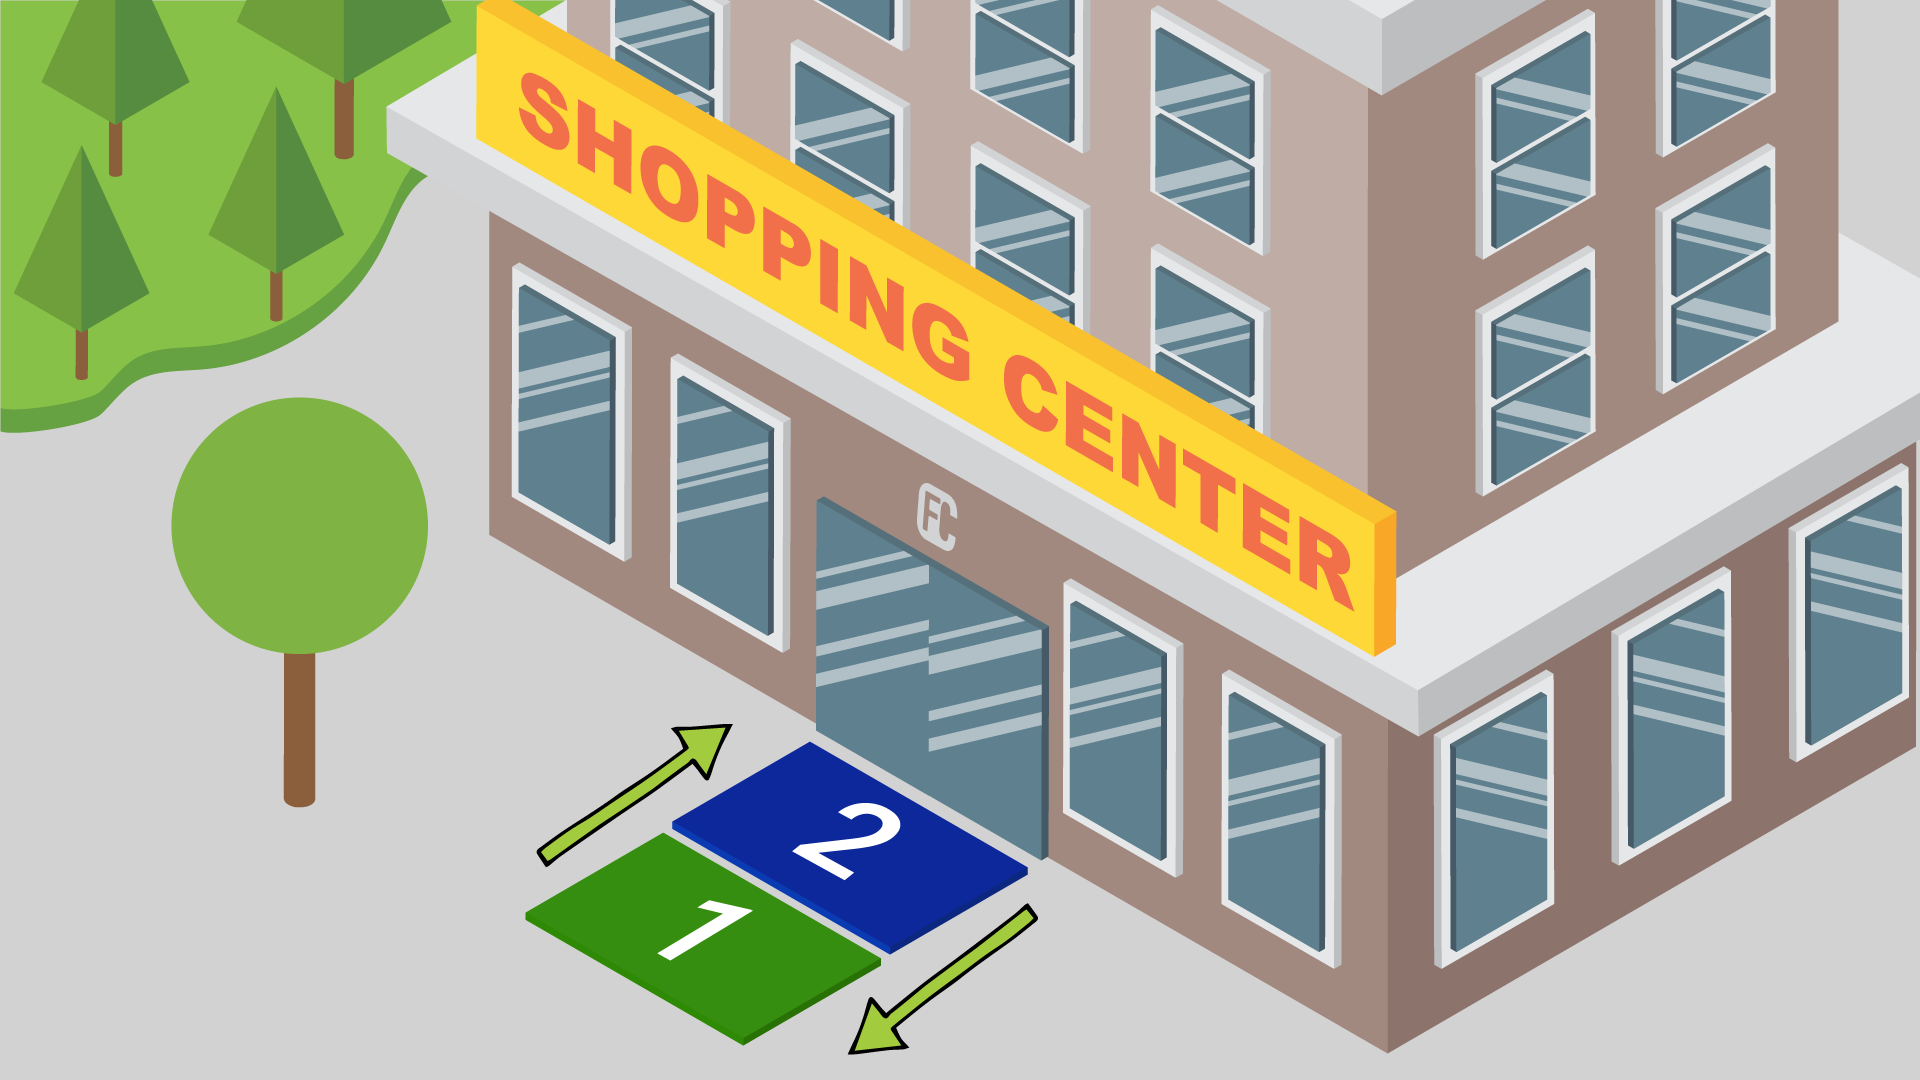 Shopping-Center-Illustration-Fllcasts